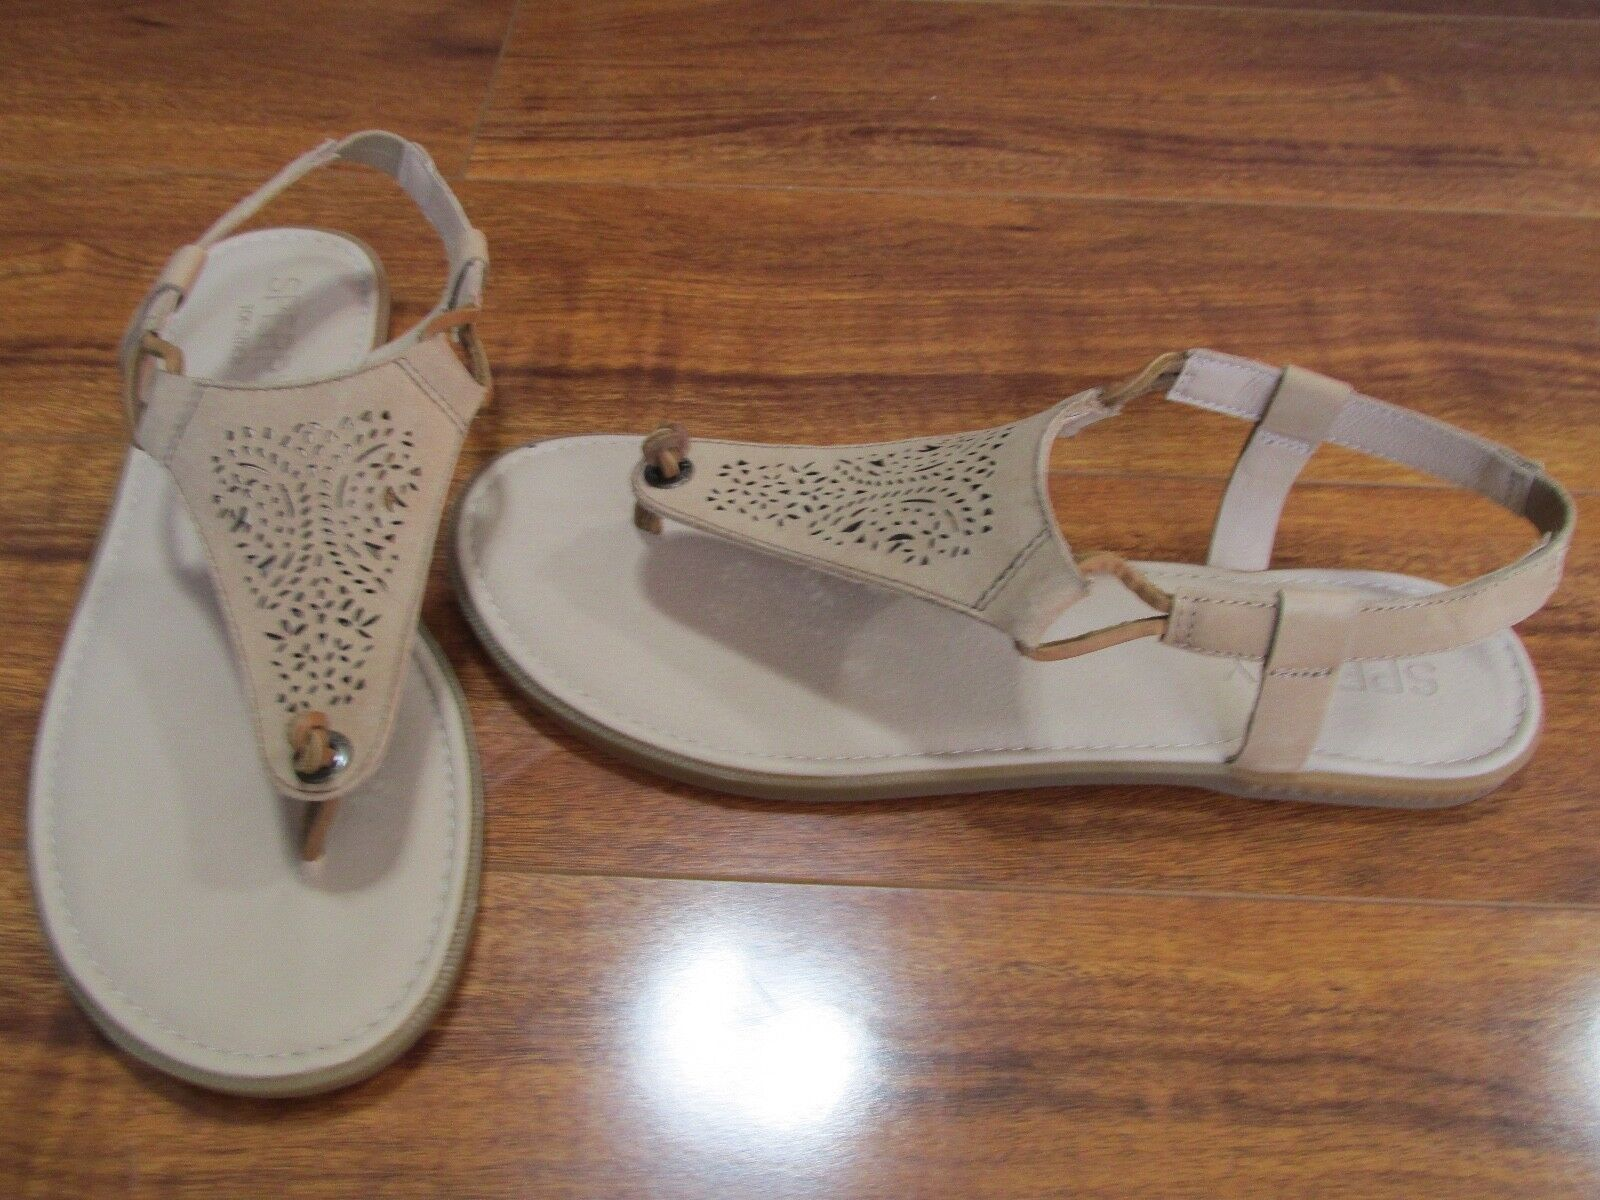 NEW SPERRY Calla Jane Perforated Leather Sandals WOMENS 9 Tan STS80531  60.00